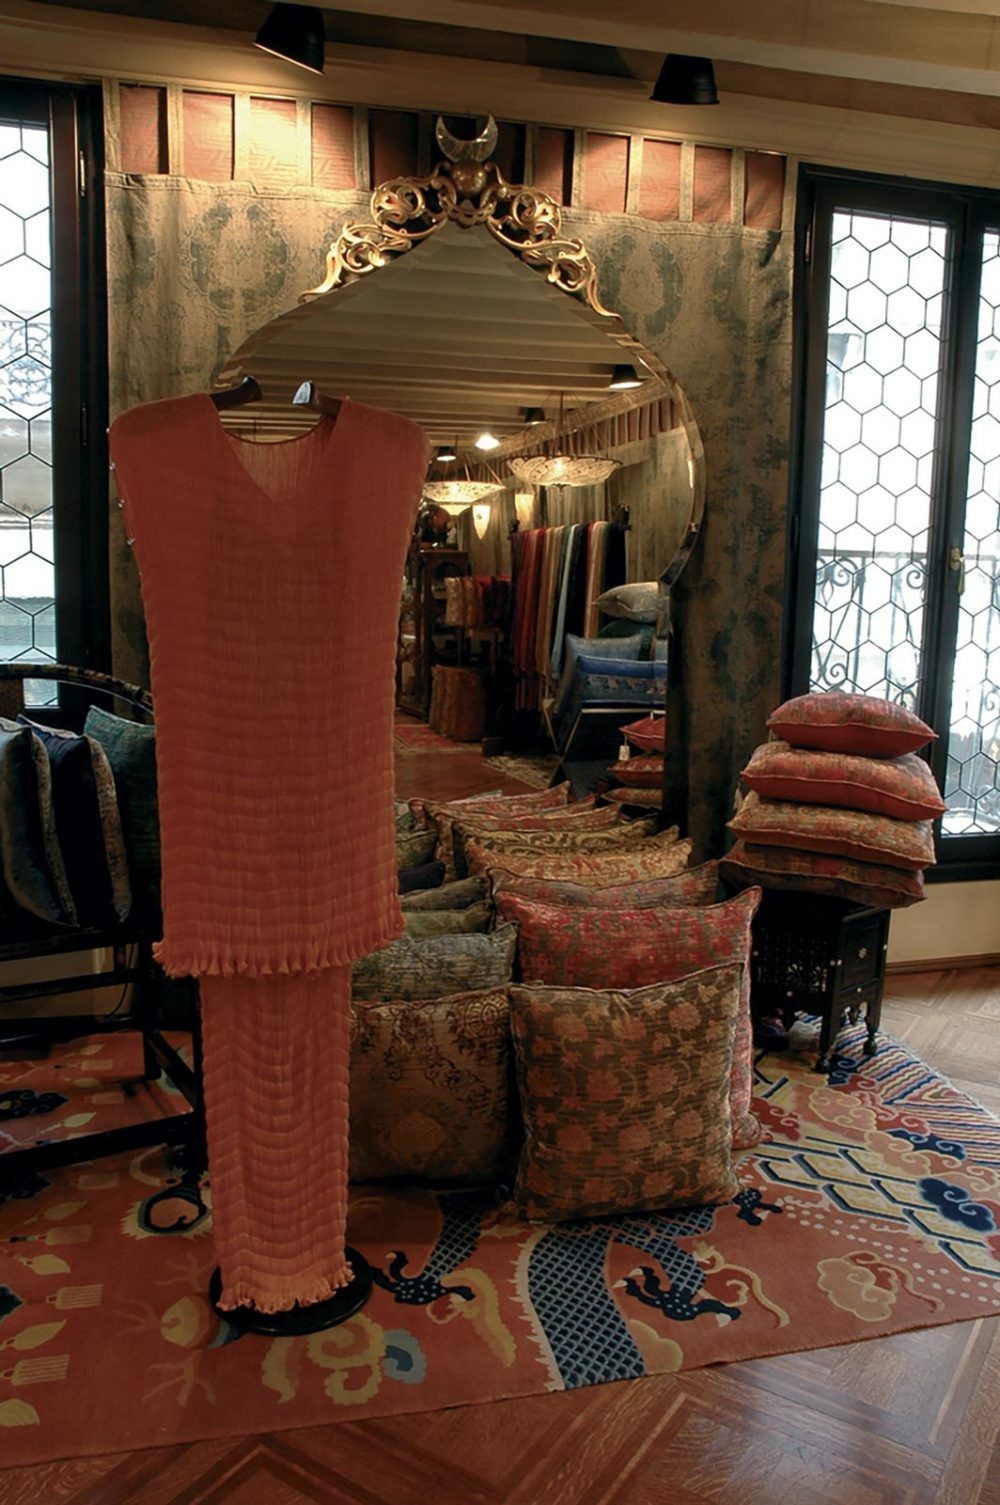 Fortuny Delphos dress in Fortuny Shop Atelier in Venice